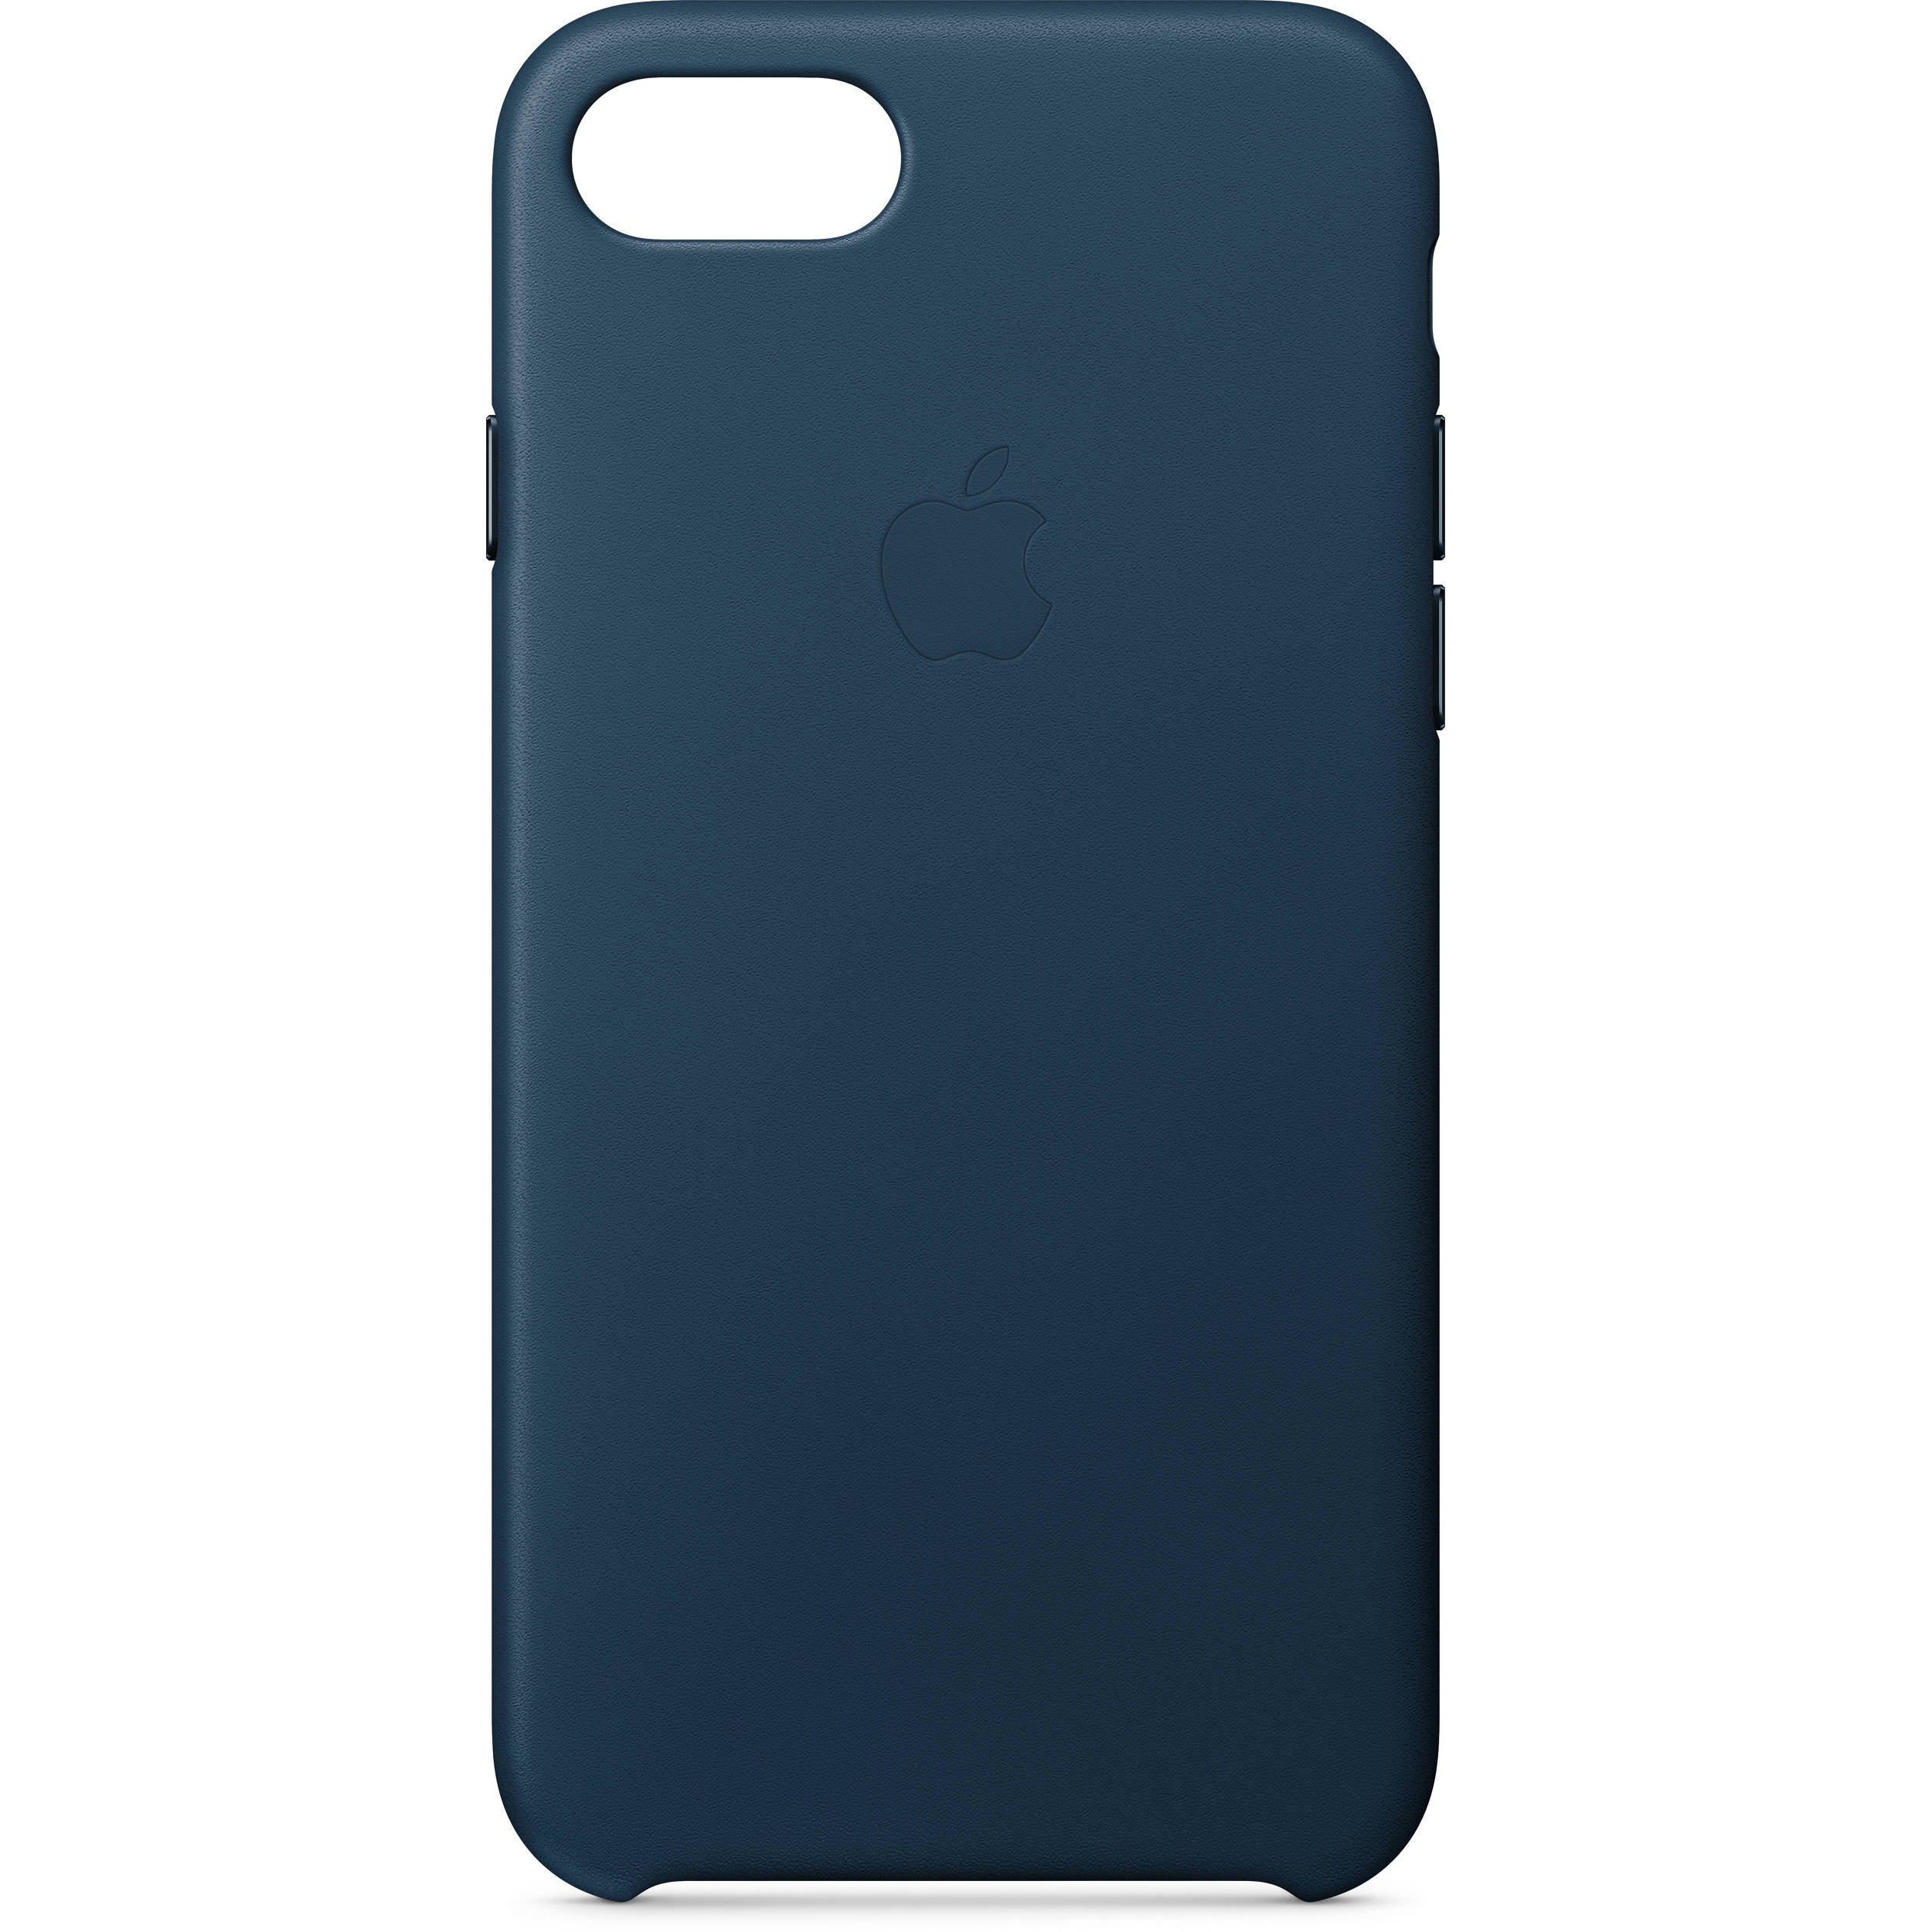 Apple iPhone 8/7 Leather Case (Cosmos Blue) MQHF2ZM/A B&H ...